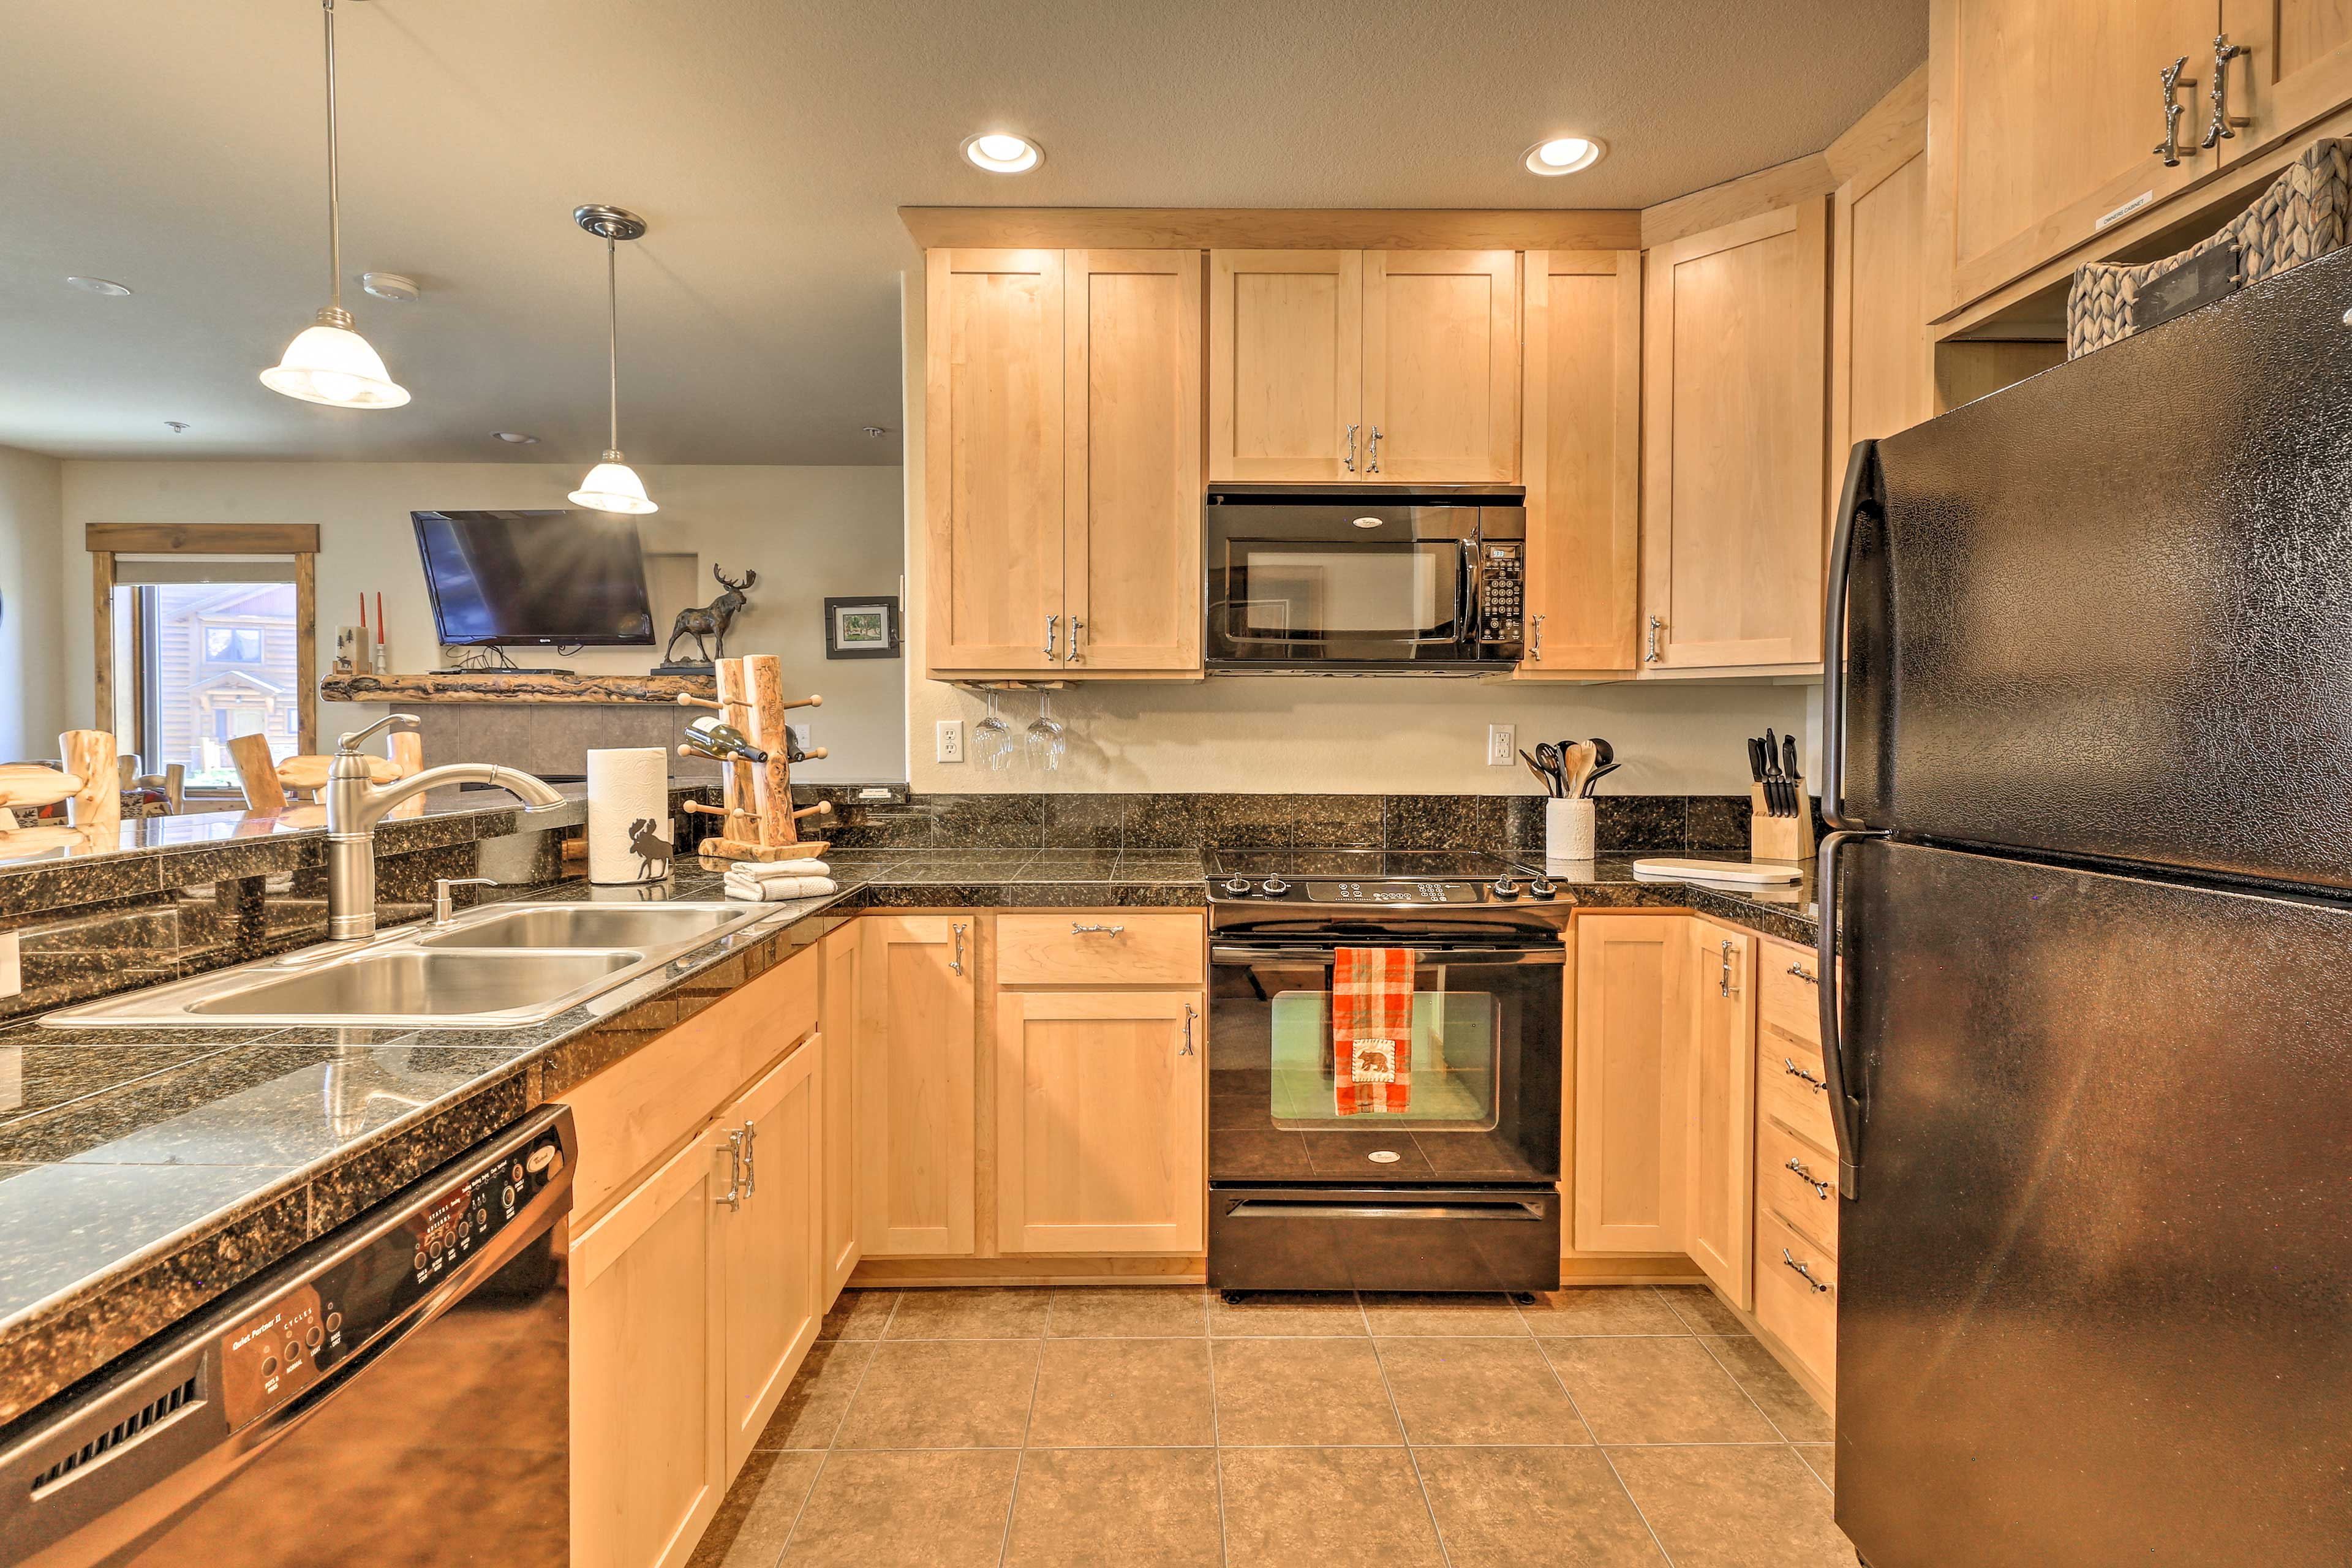 The kitchen comes fully equipped with granite counters.